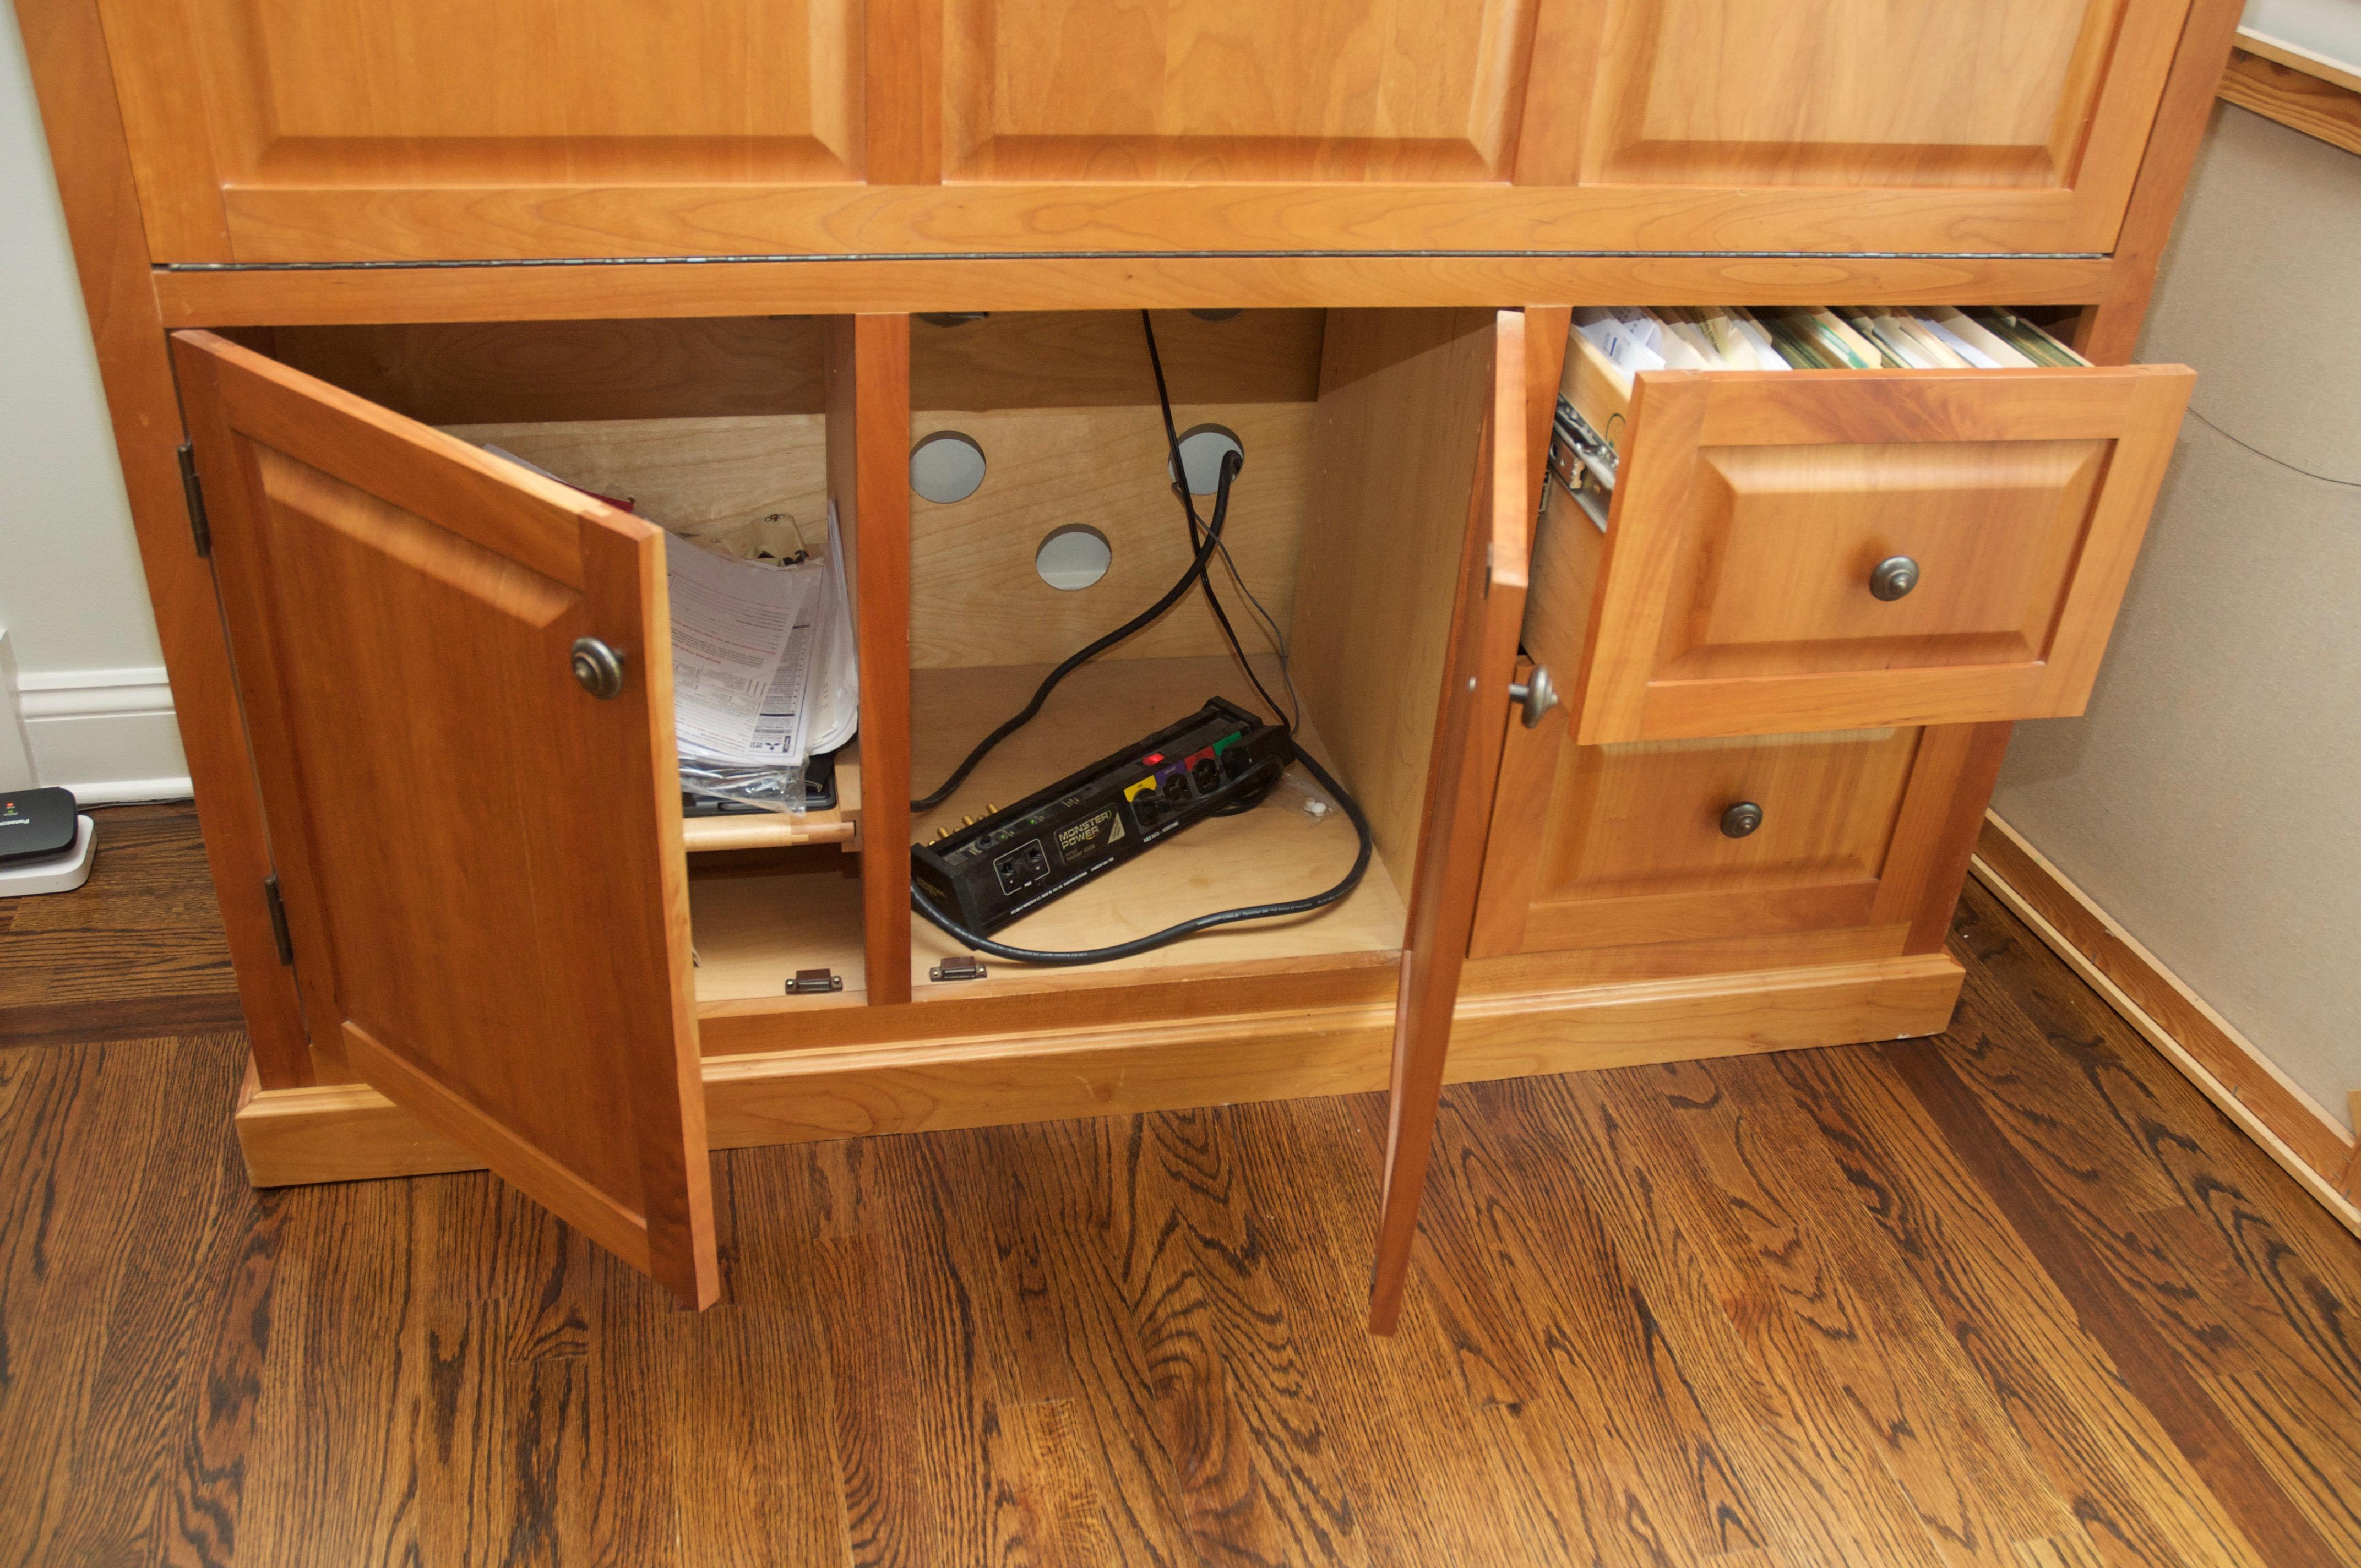 Attractive Copeland Furniture Cherry Wood Hideaway Desk   Image 3 Of 10